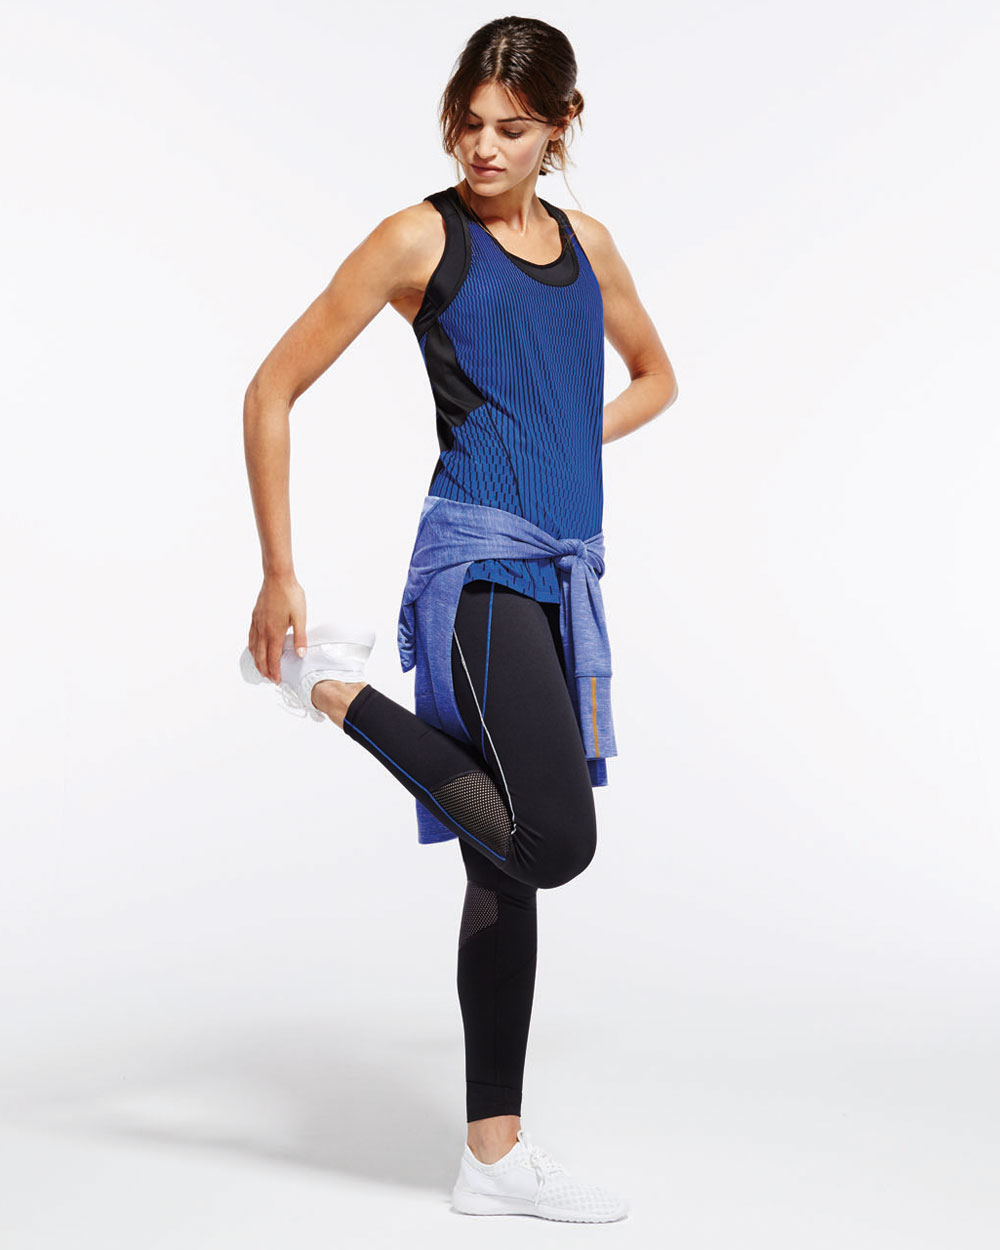 Hyba Activewear & Workout Clothes: Looks We Love